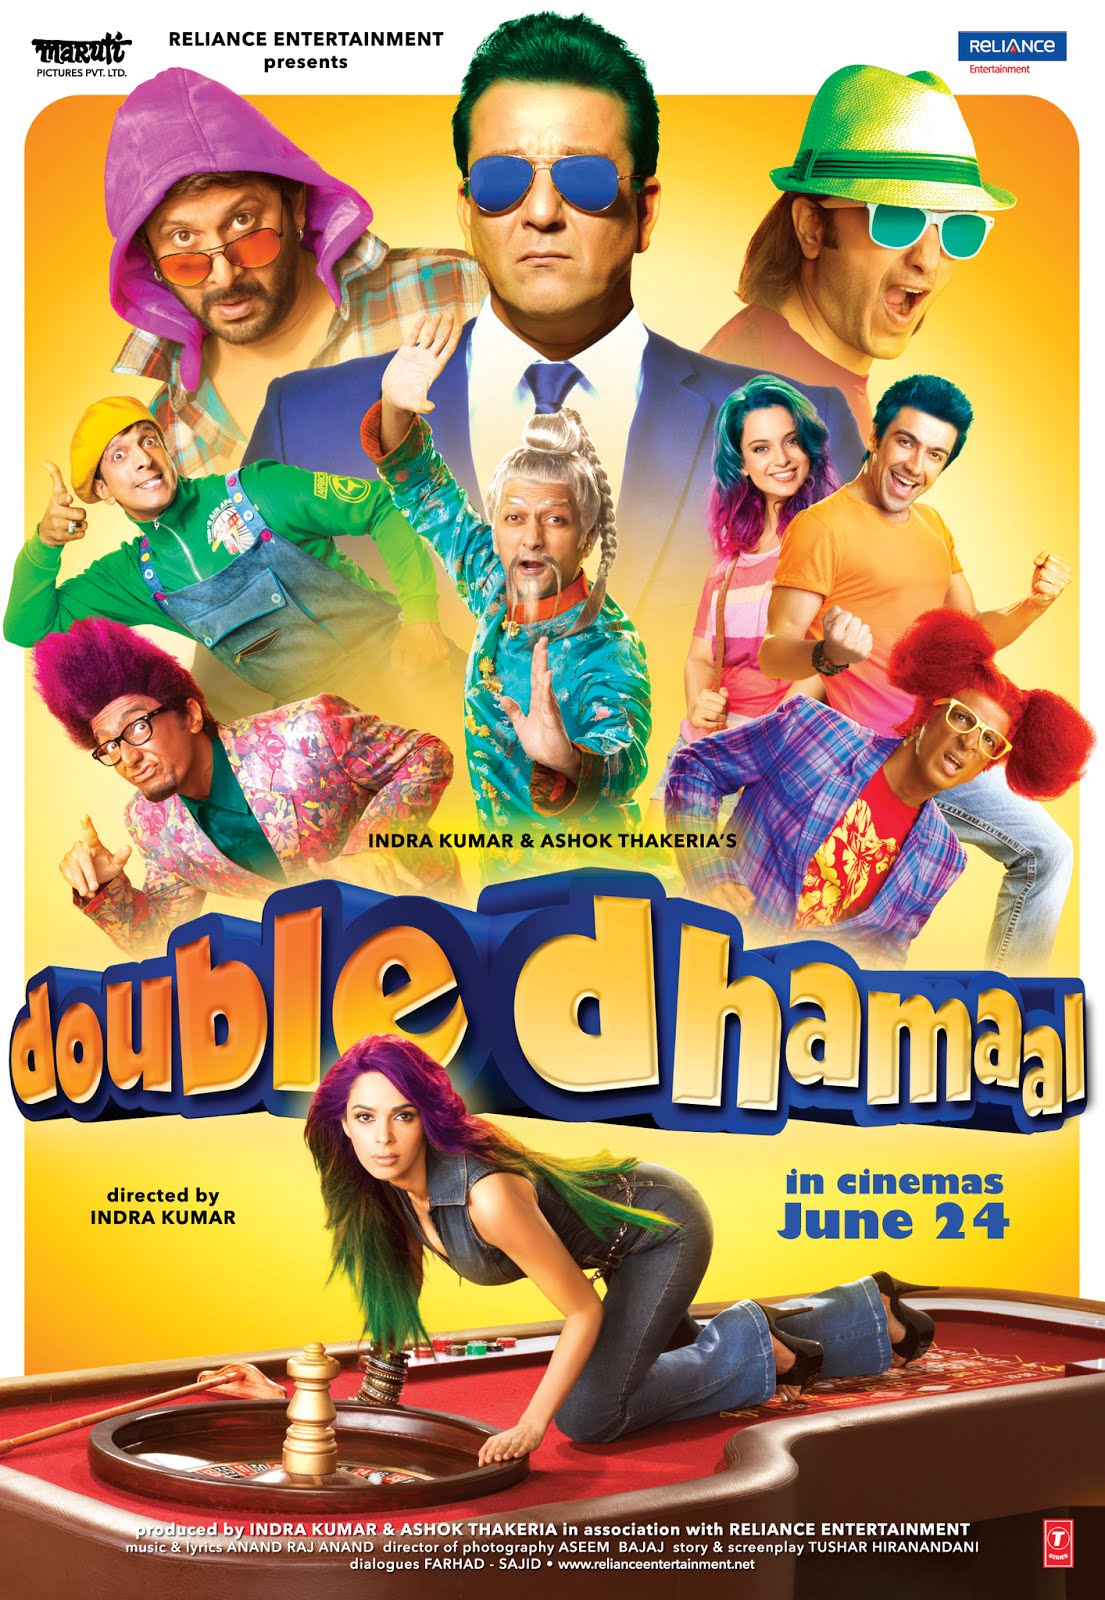 Double Dhamaal (2011) Hindi 720p BluRay 1.5GB